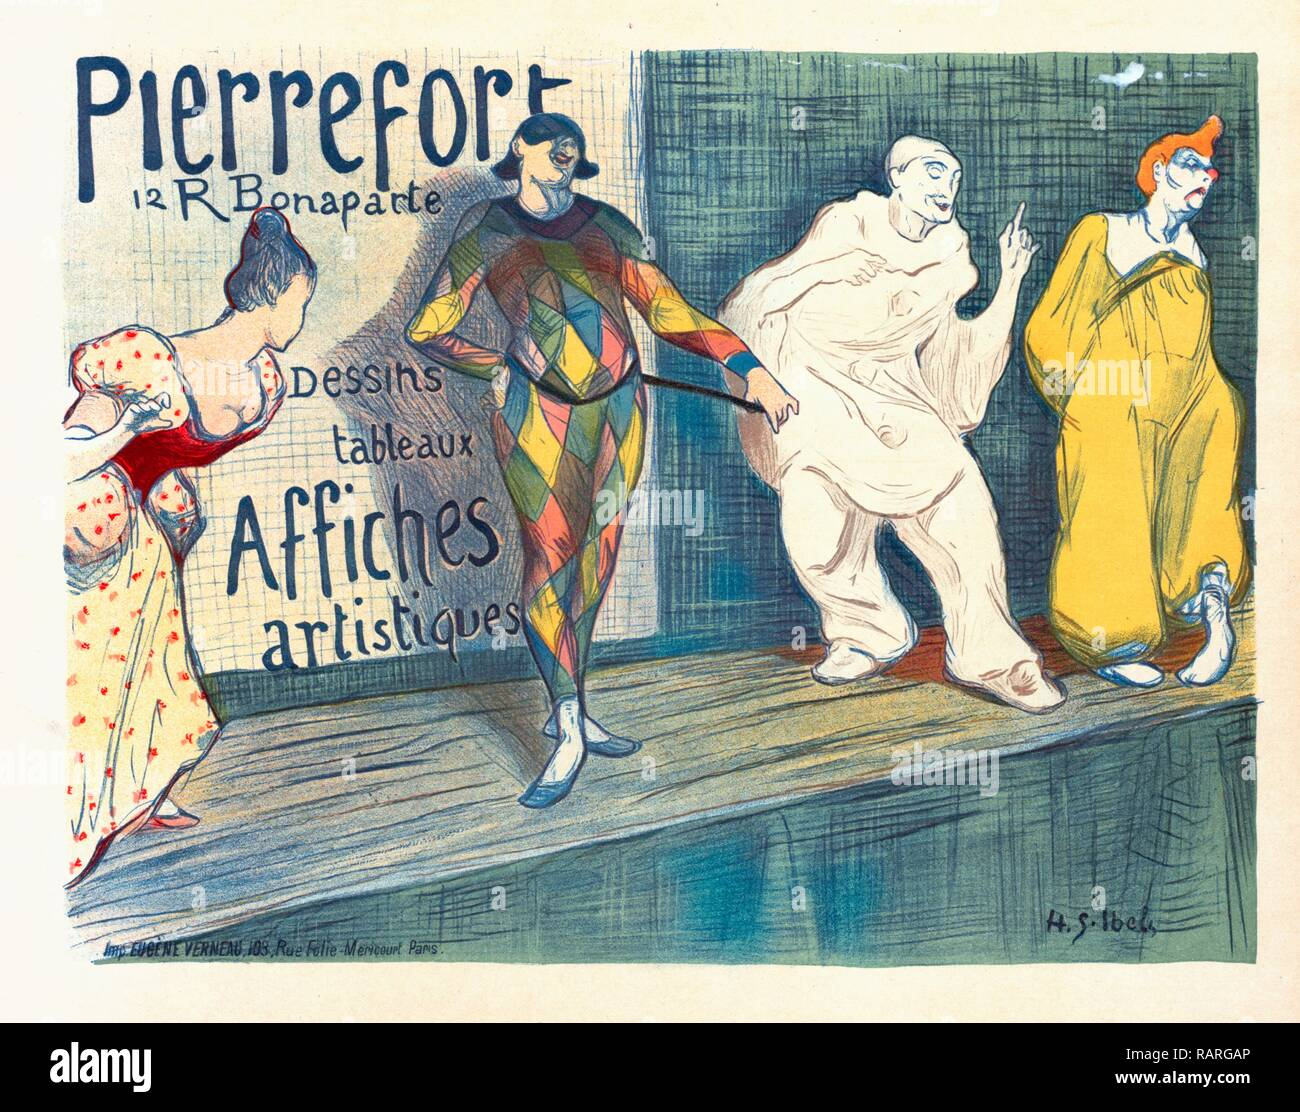 Poster for Posters artistiques Pierrefort. Ibels, Henry Gabriel 1867-1936, French illustrator, printmaker, painter reimagined - Stock Image